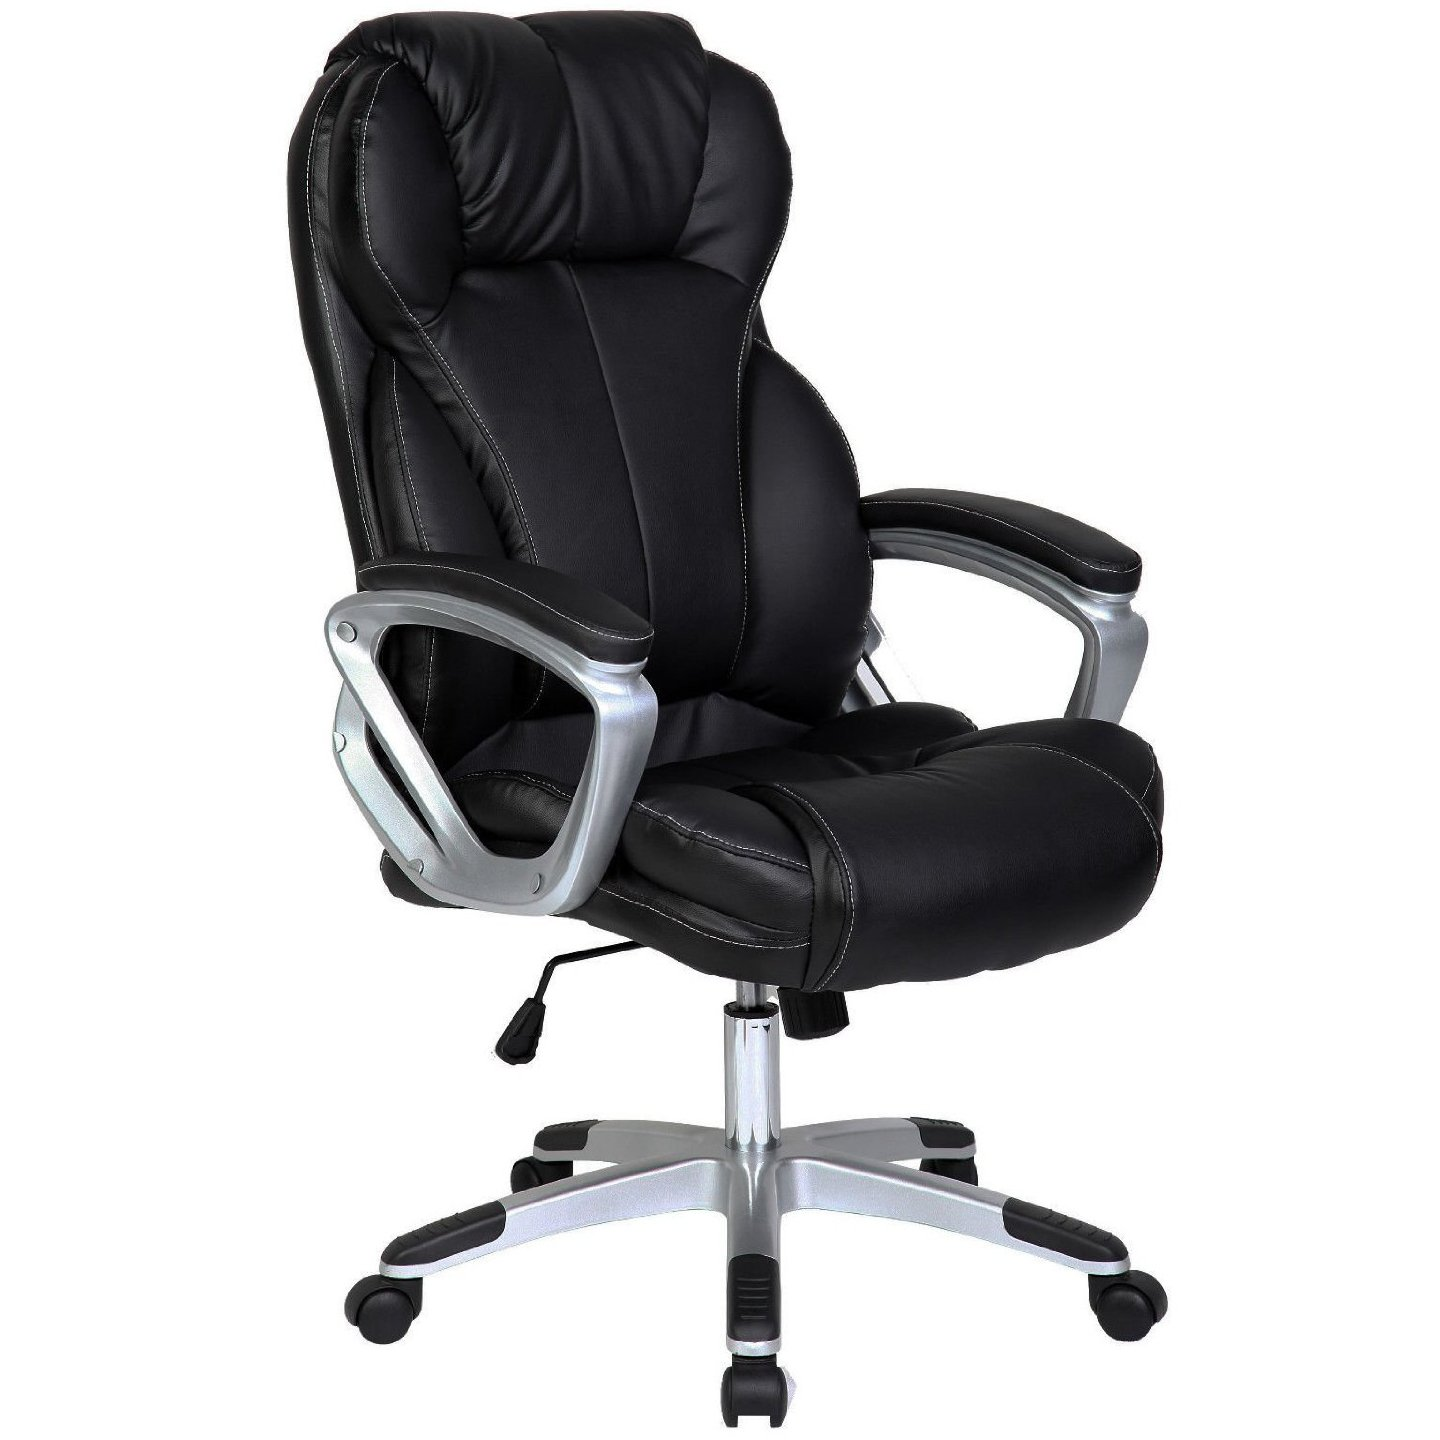 Top Most fortable fice Chair Detailed Review